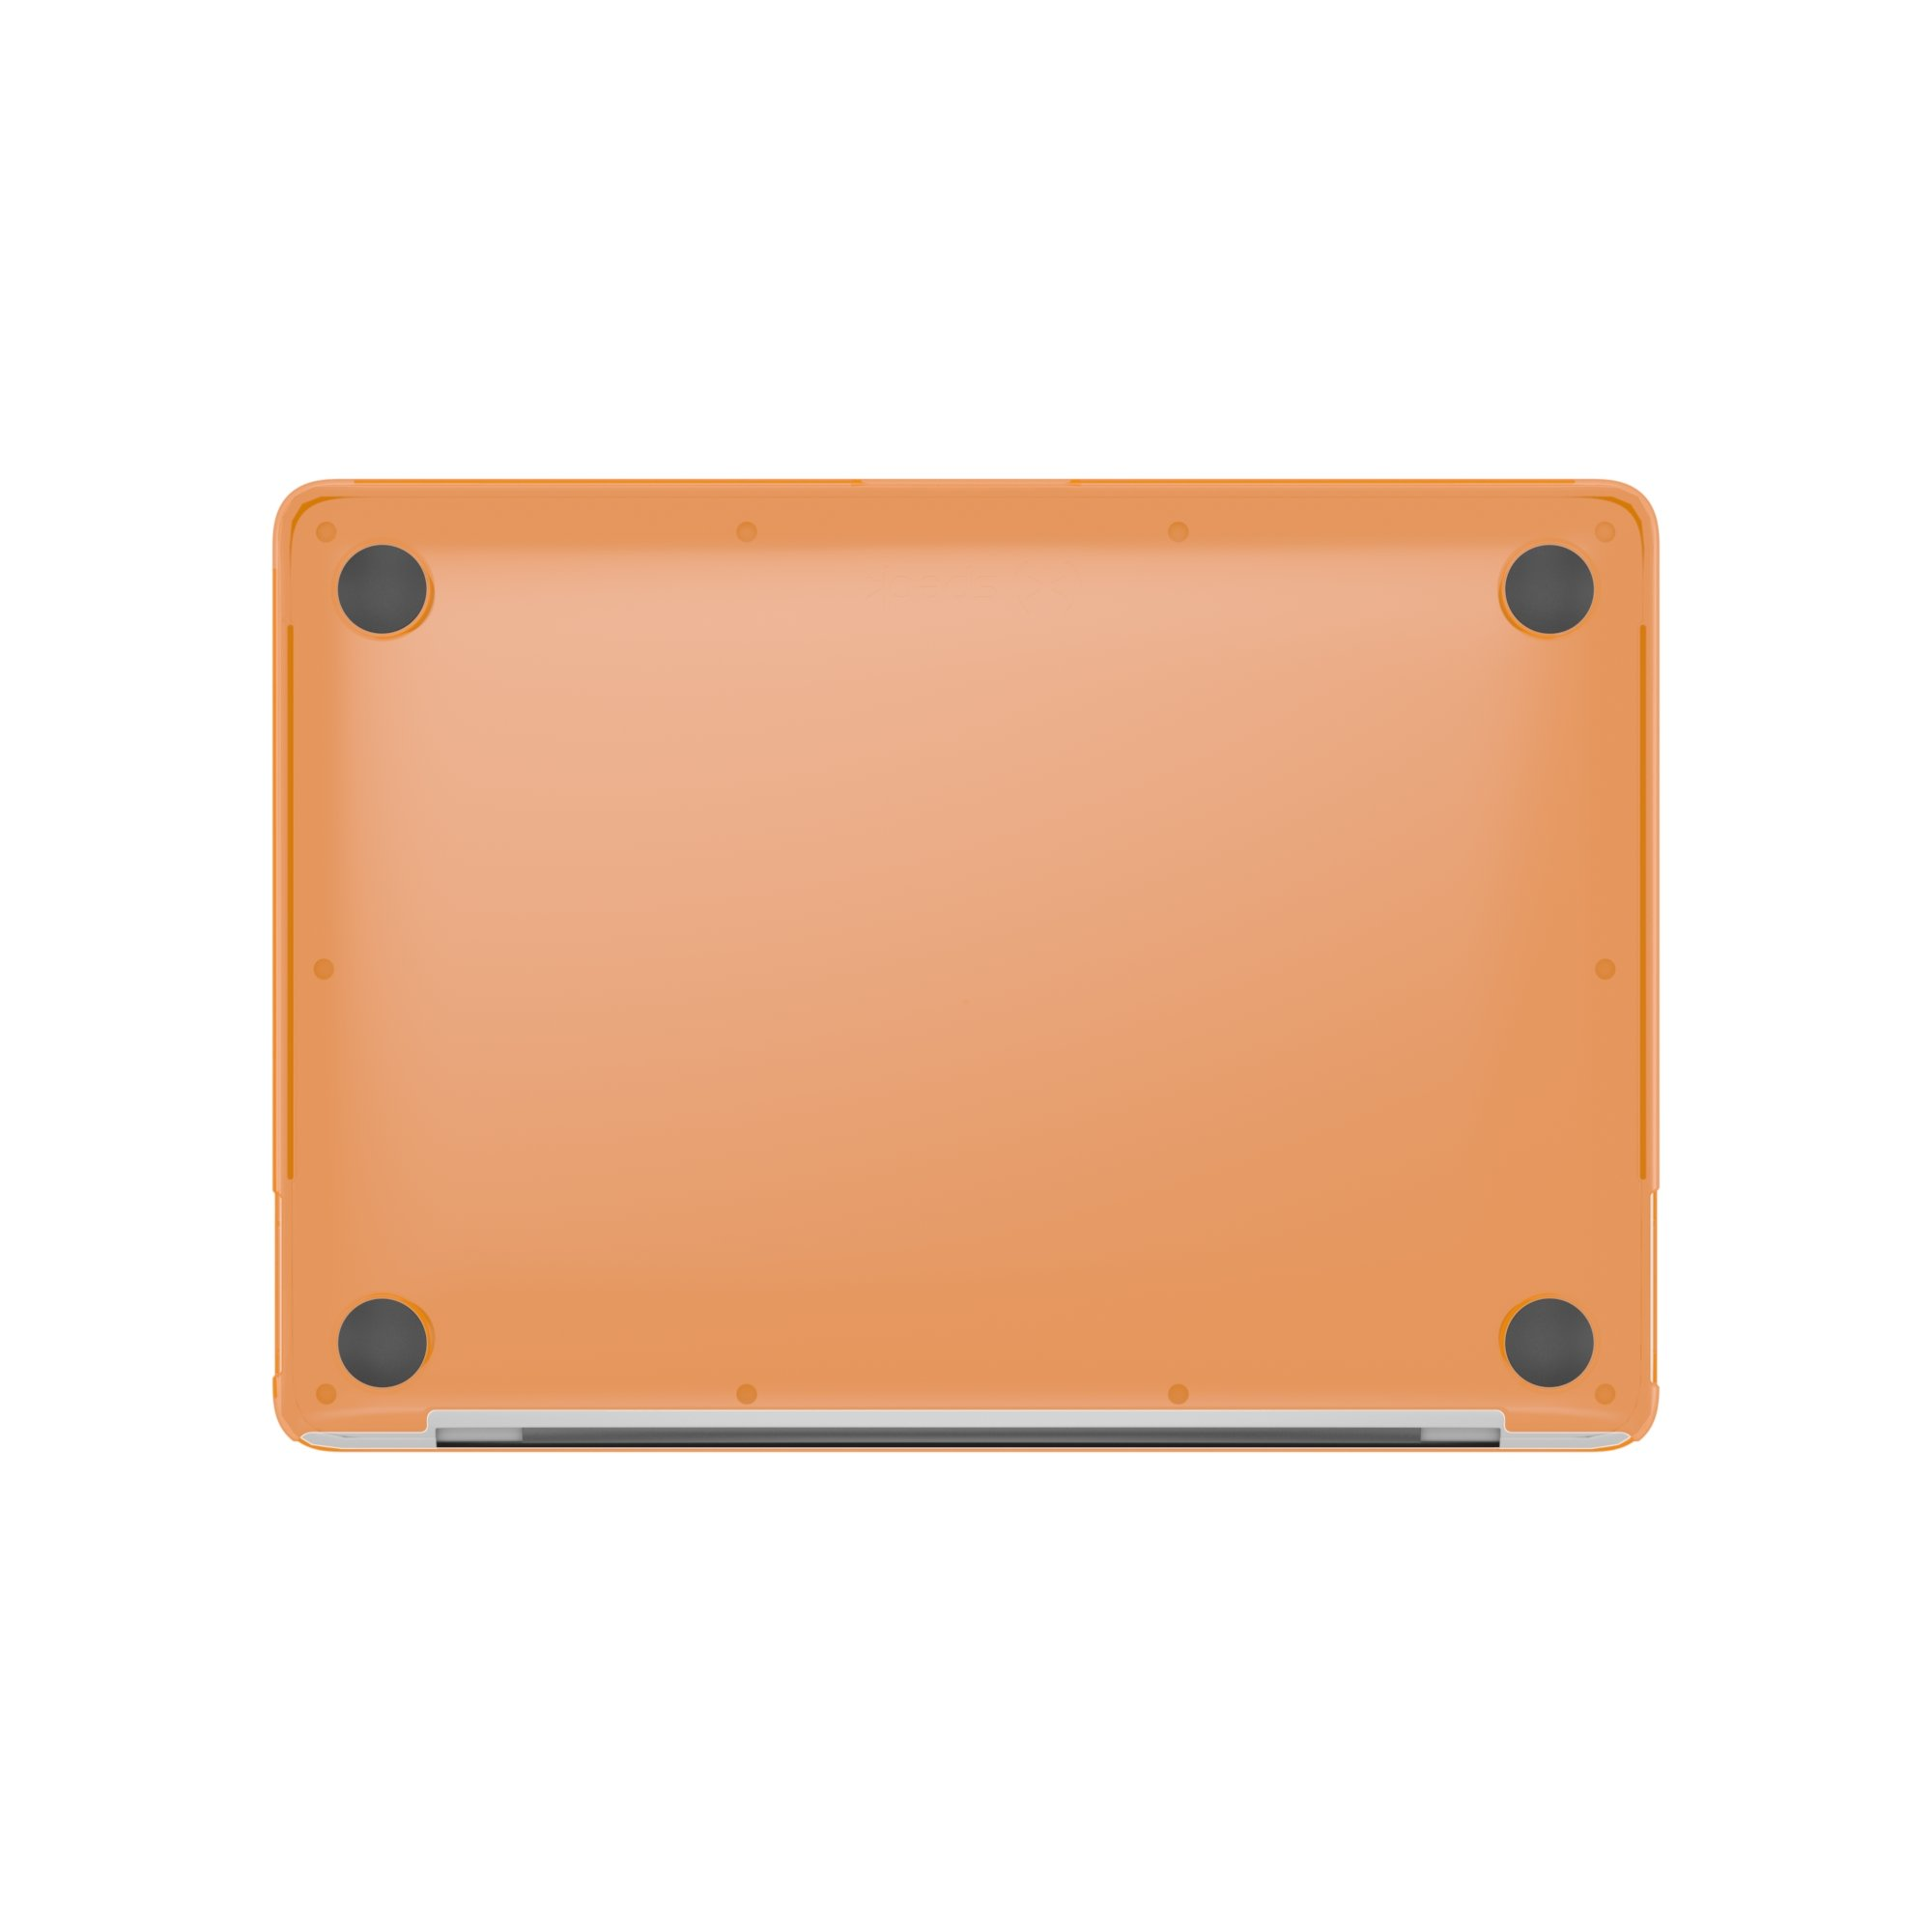 Speck Products 110608-7374 SmartShell Case, MacBook Pro 13'' (with and Without Touch Bar), Persimmon Orange by Speck (Image #5)